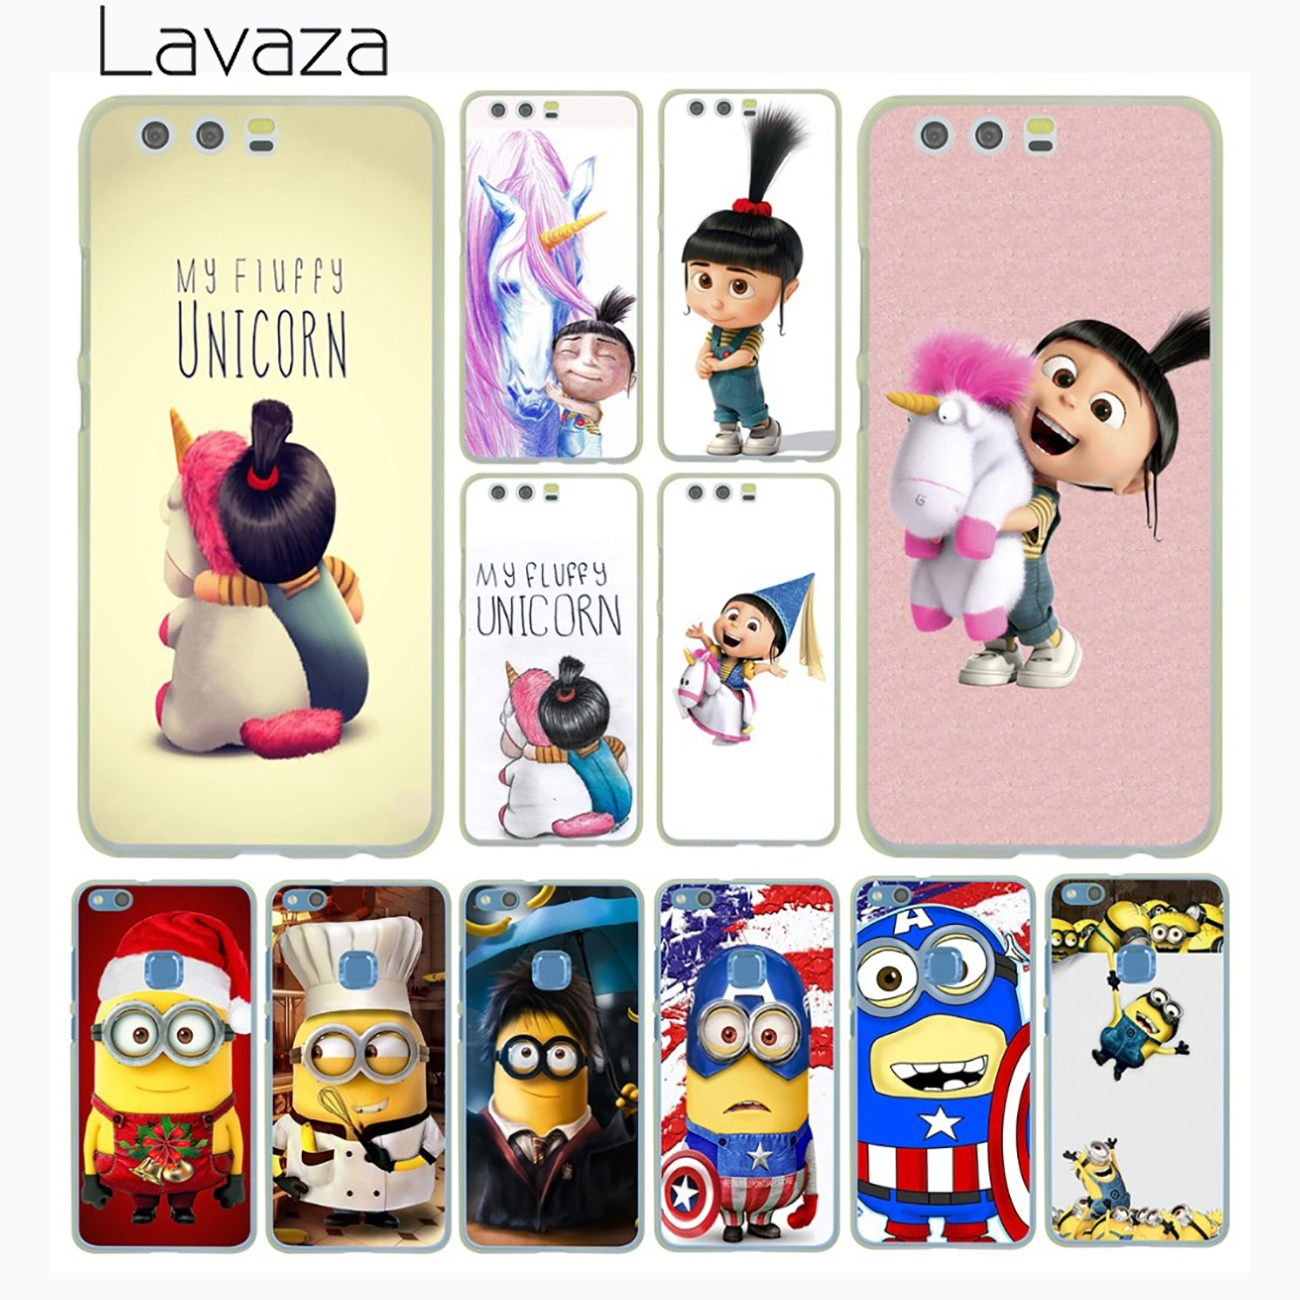 Lavaza Minions Minion My Unicorn Agnes Case for Huawei P20 P10 P9 Plus P8 Lite Mini 2015 ...